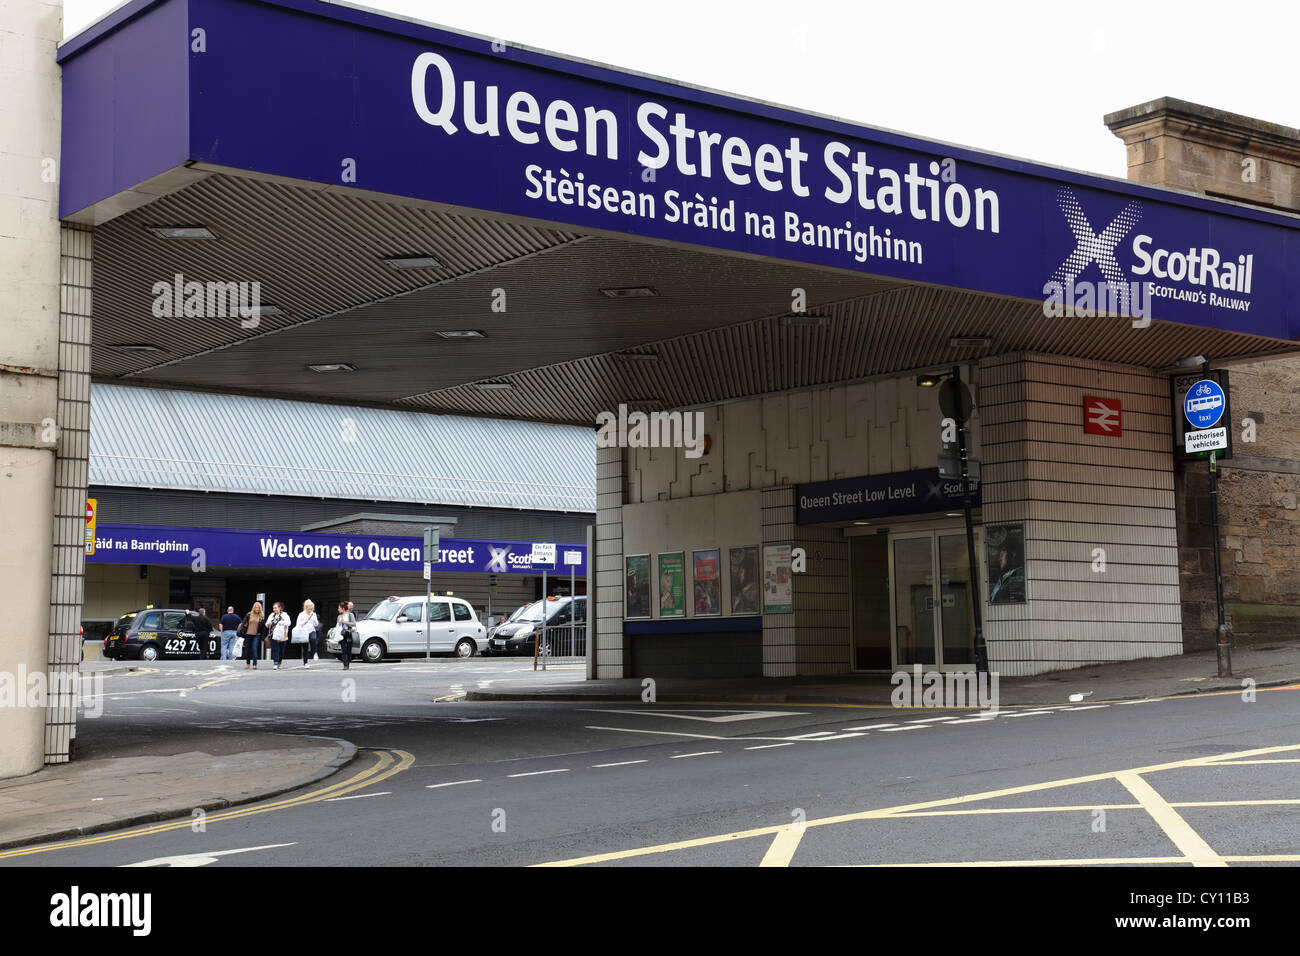 Vehicle and pedestrian entrance to Queen Street Station on North Hanover Street in Glasgow city centre Scotland - Stock Image